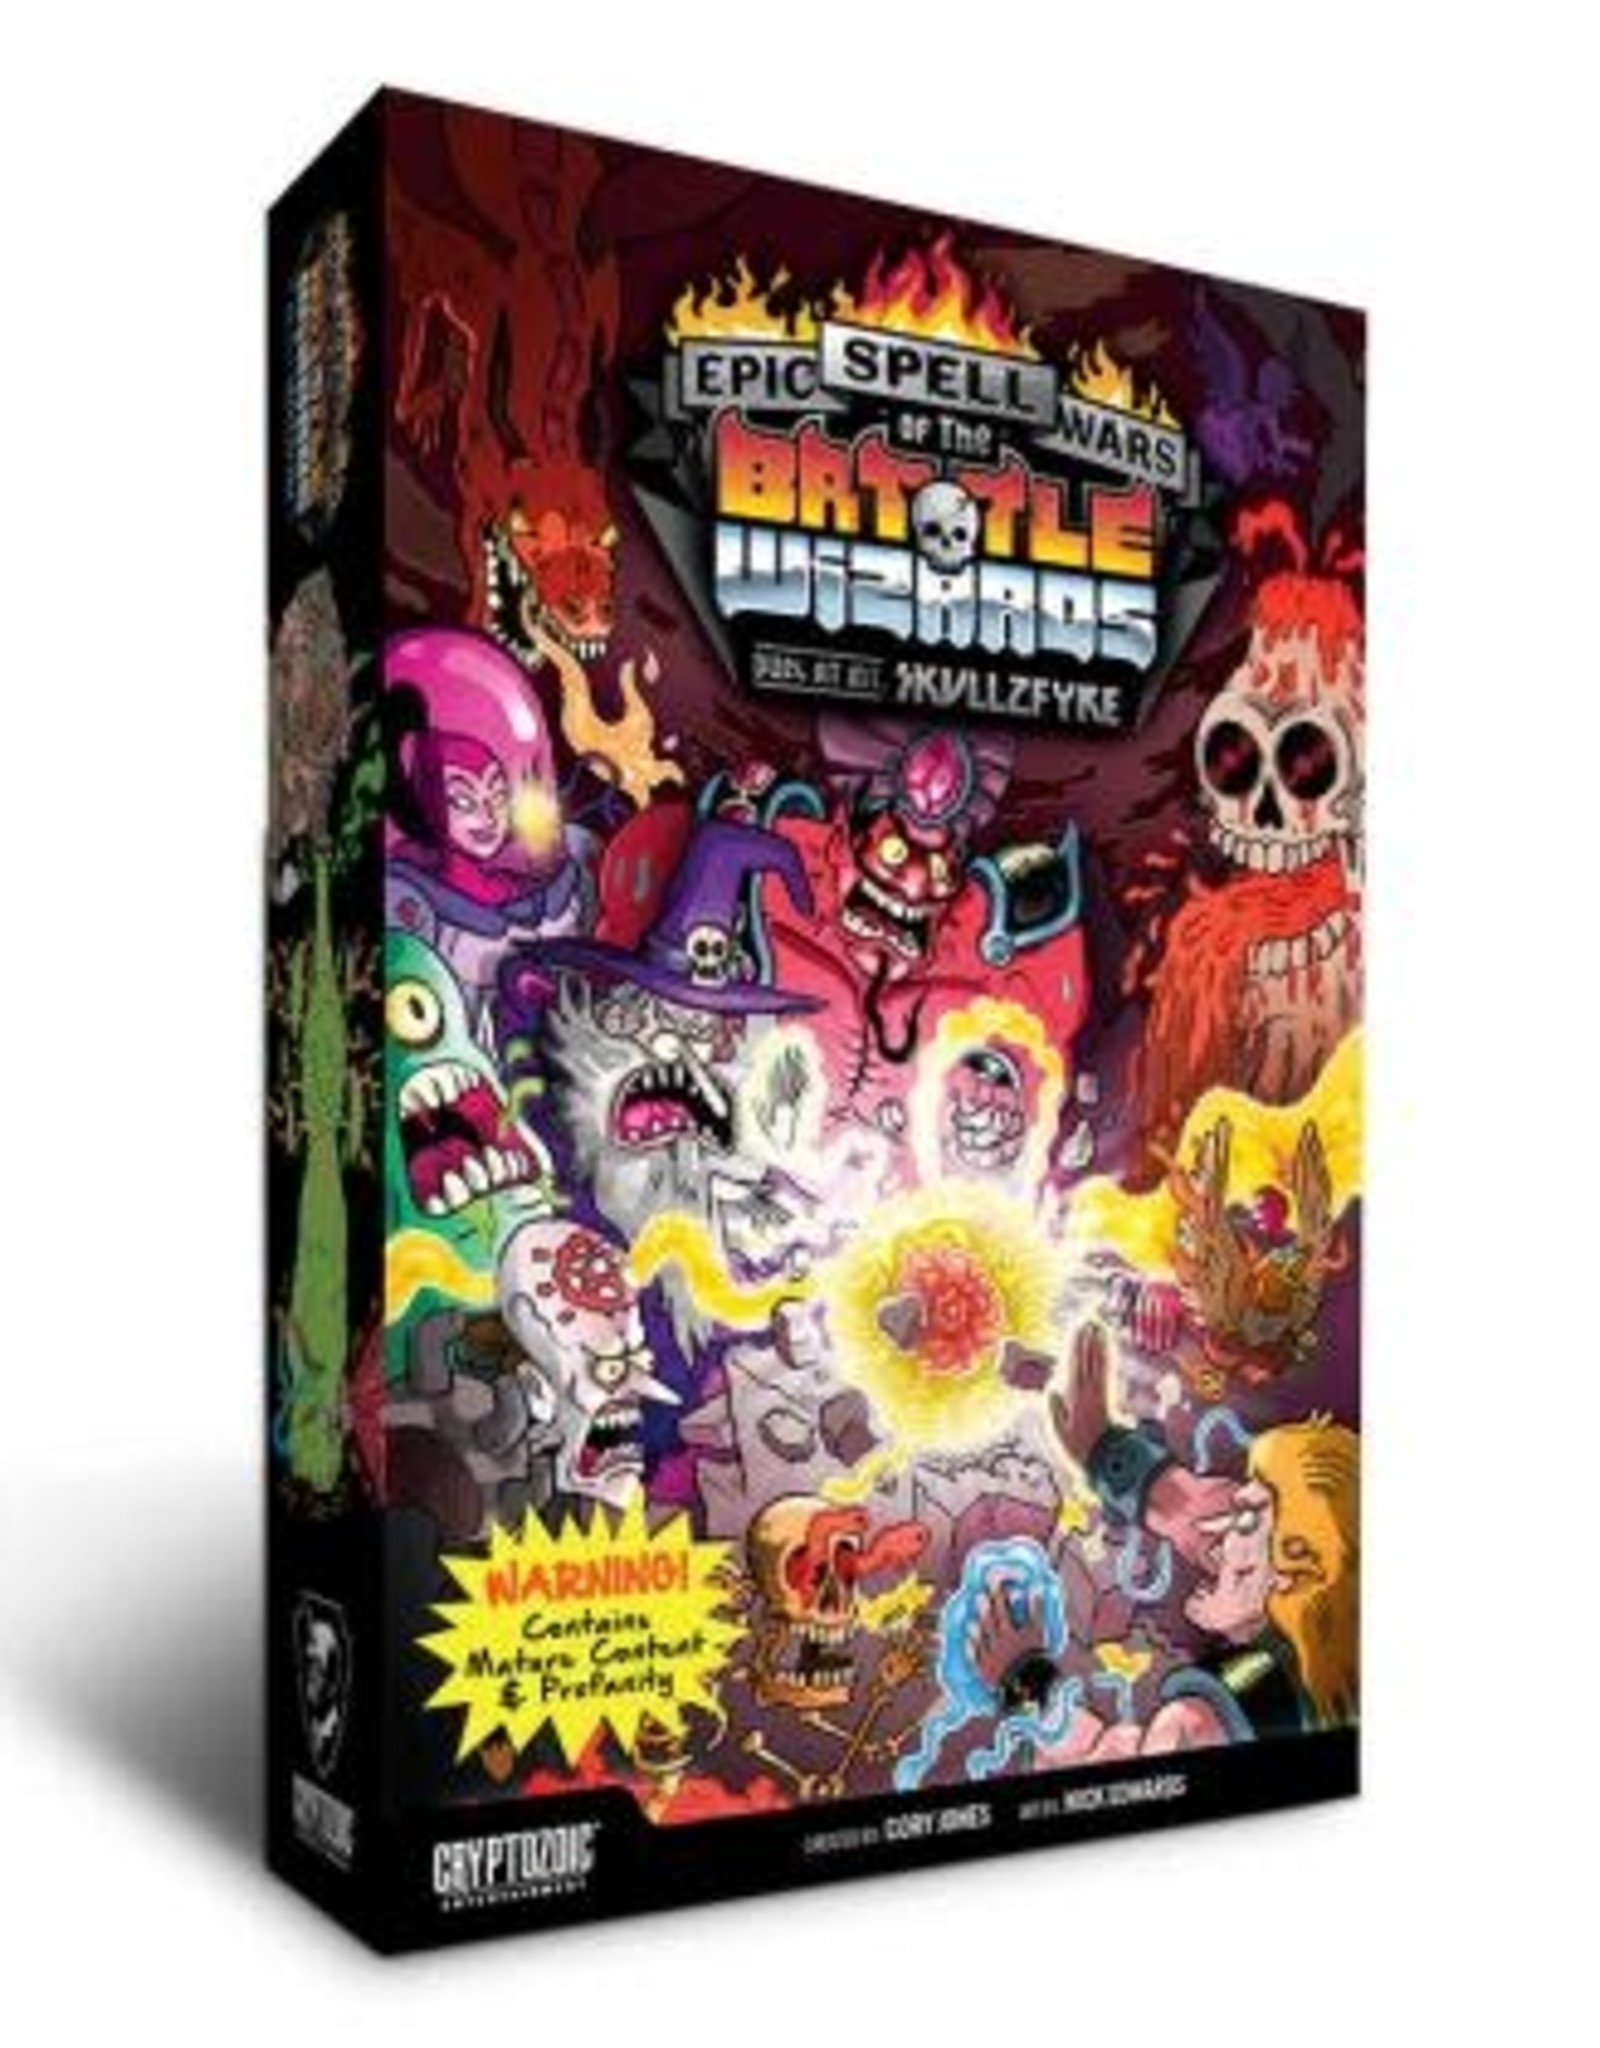 Cryptozoic Entertainment Epic Spell Wars: Duel at Mt. Skullzfyre